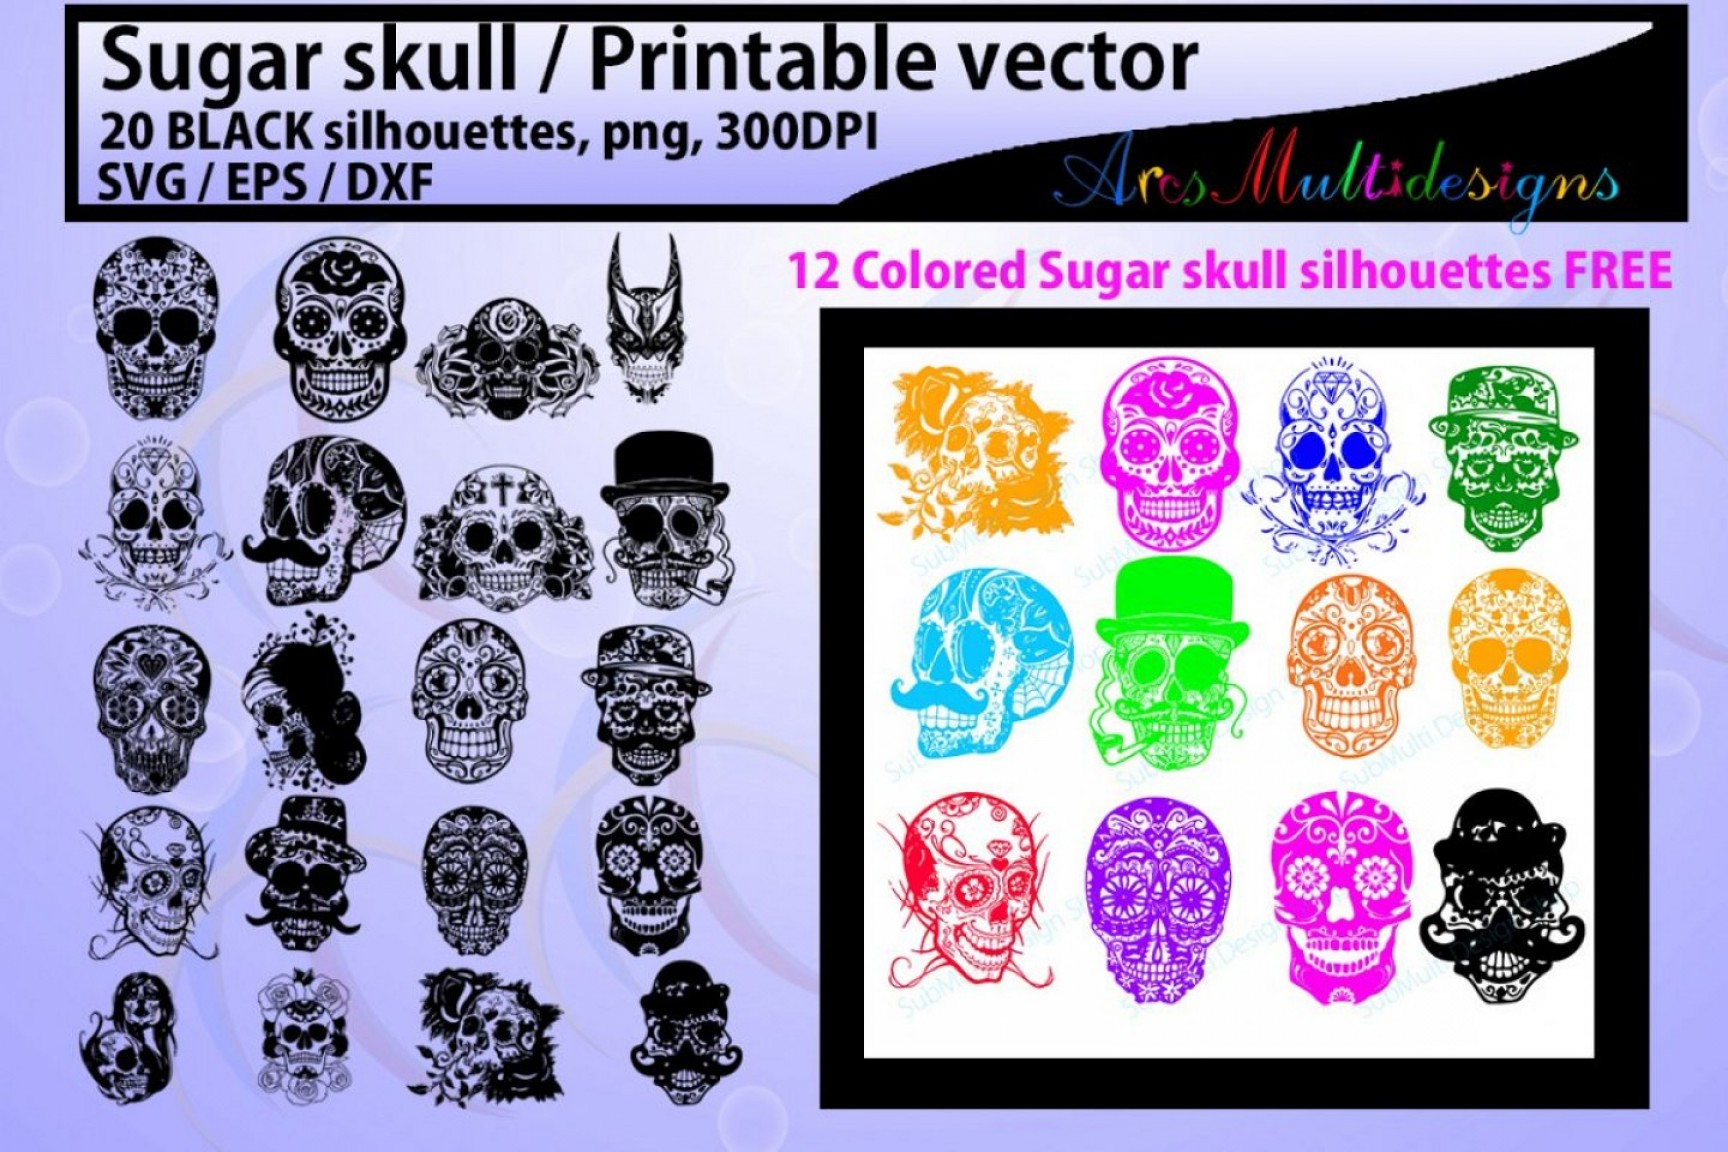 Harley-Davidson Flame Vector Silhouette: Sugar Skull Silhouette Sugar Skull Sugar Skull Svg Eps Dxf Vector Skull Png Colored Hq Colored Skull Silhouette Svg